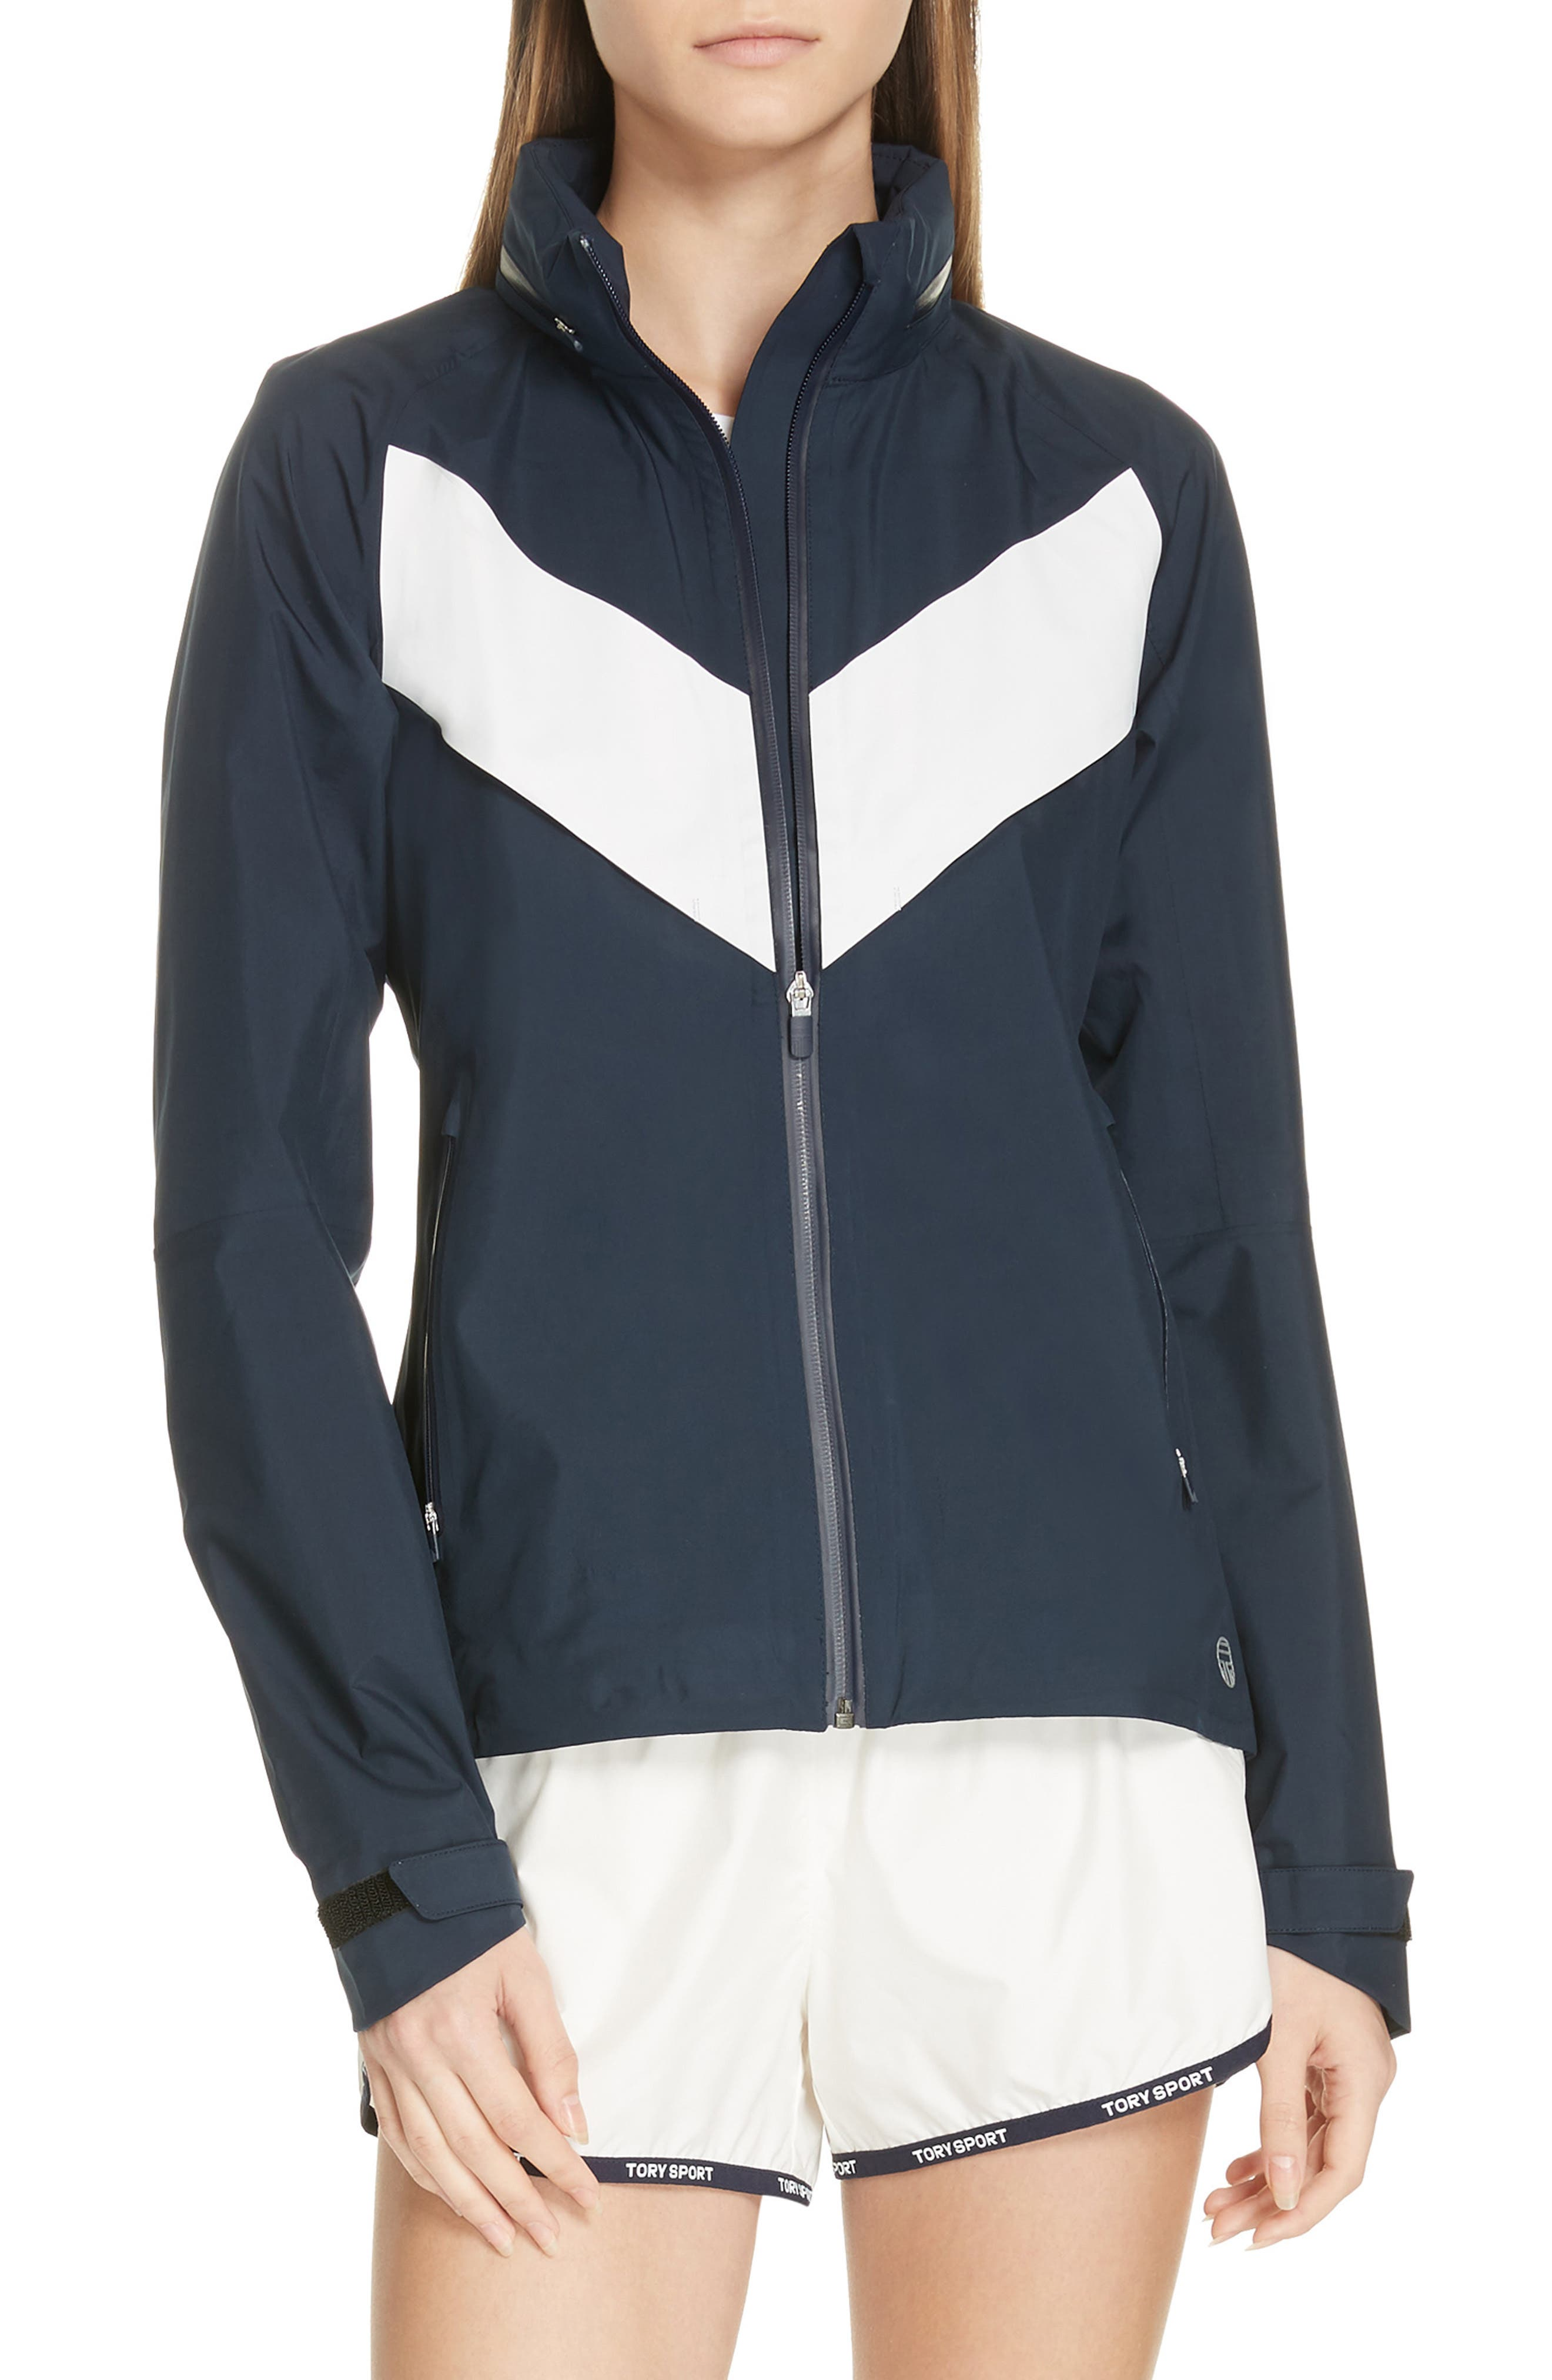 TORY SPORT, All Weather Run Jacket, Main thumbnail 1, color, TORY NAVY/ WHITE SNOW